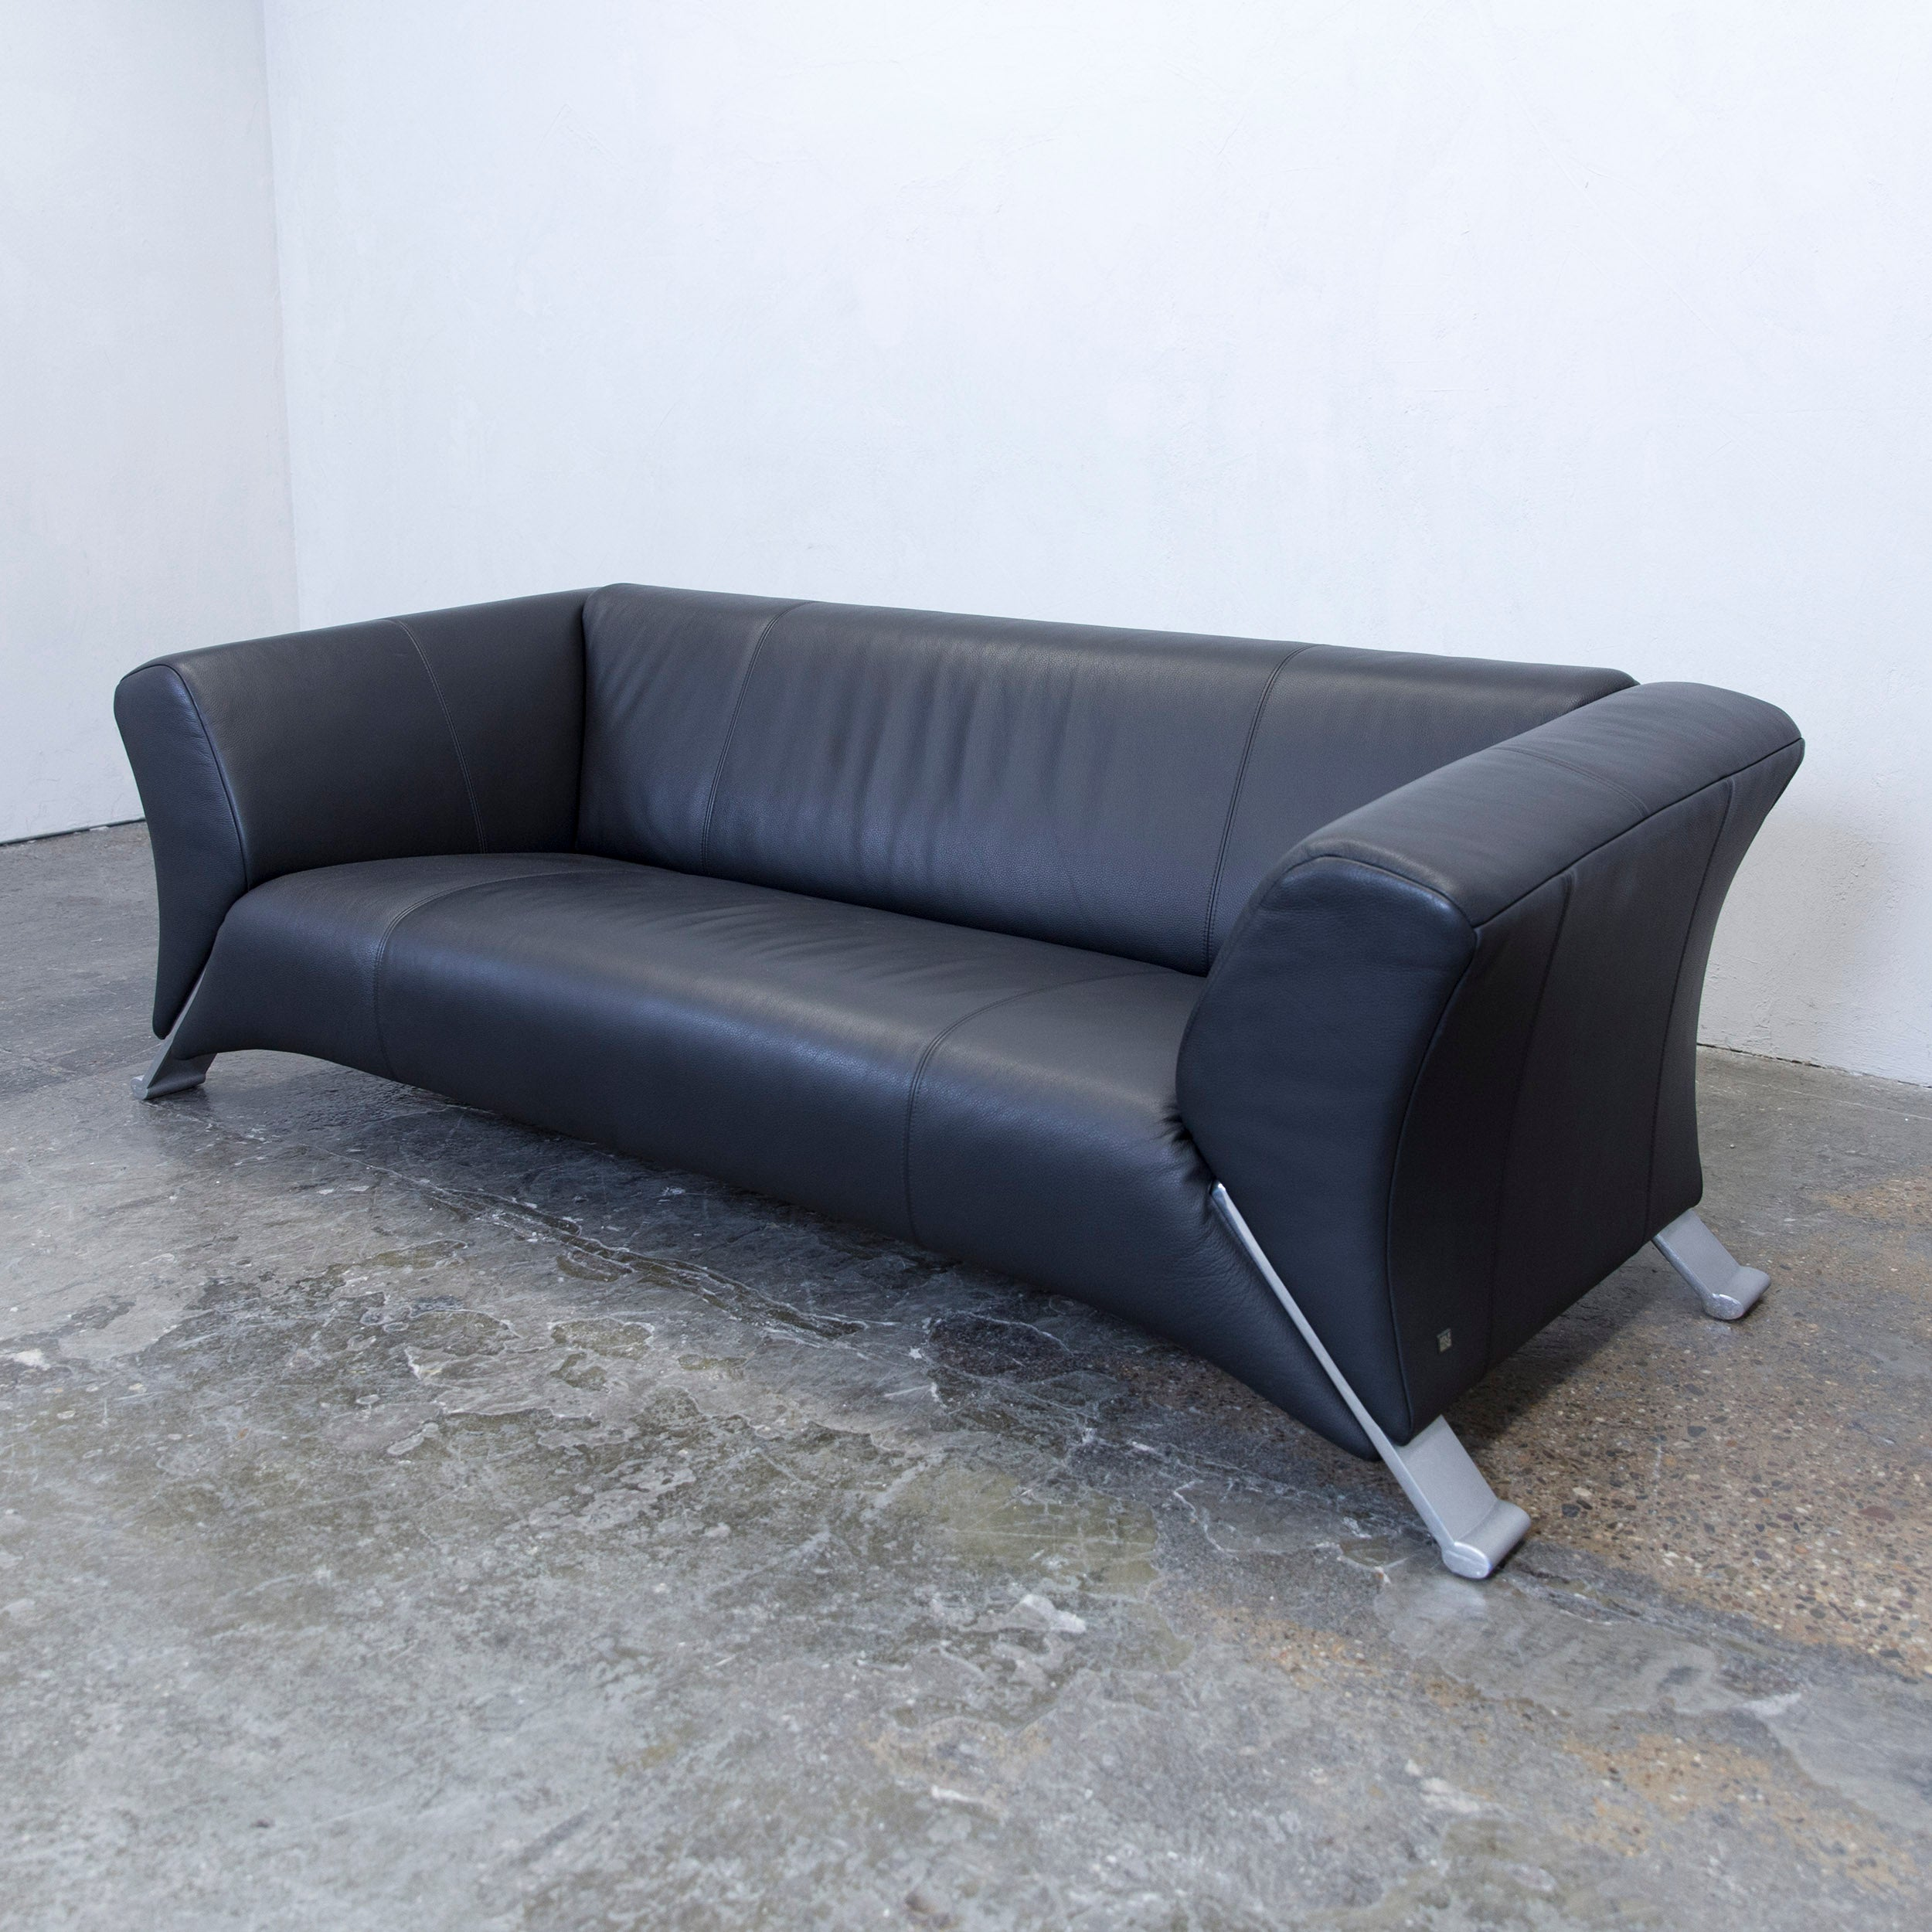 Benz Couch Rolf Benz 322 Designer Leather Sofa Black Three Seat Couch Modern